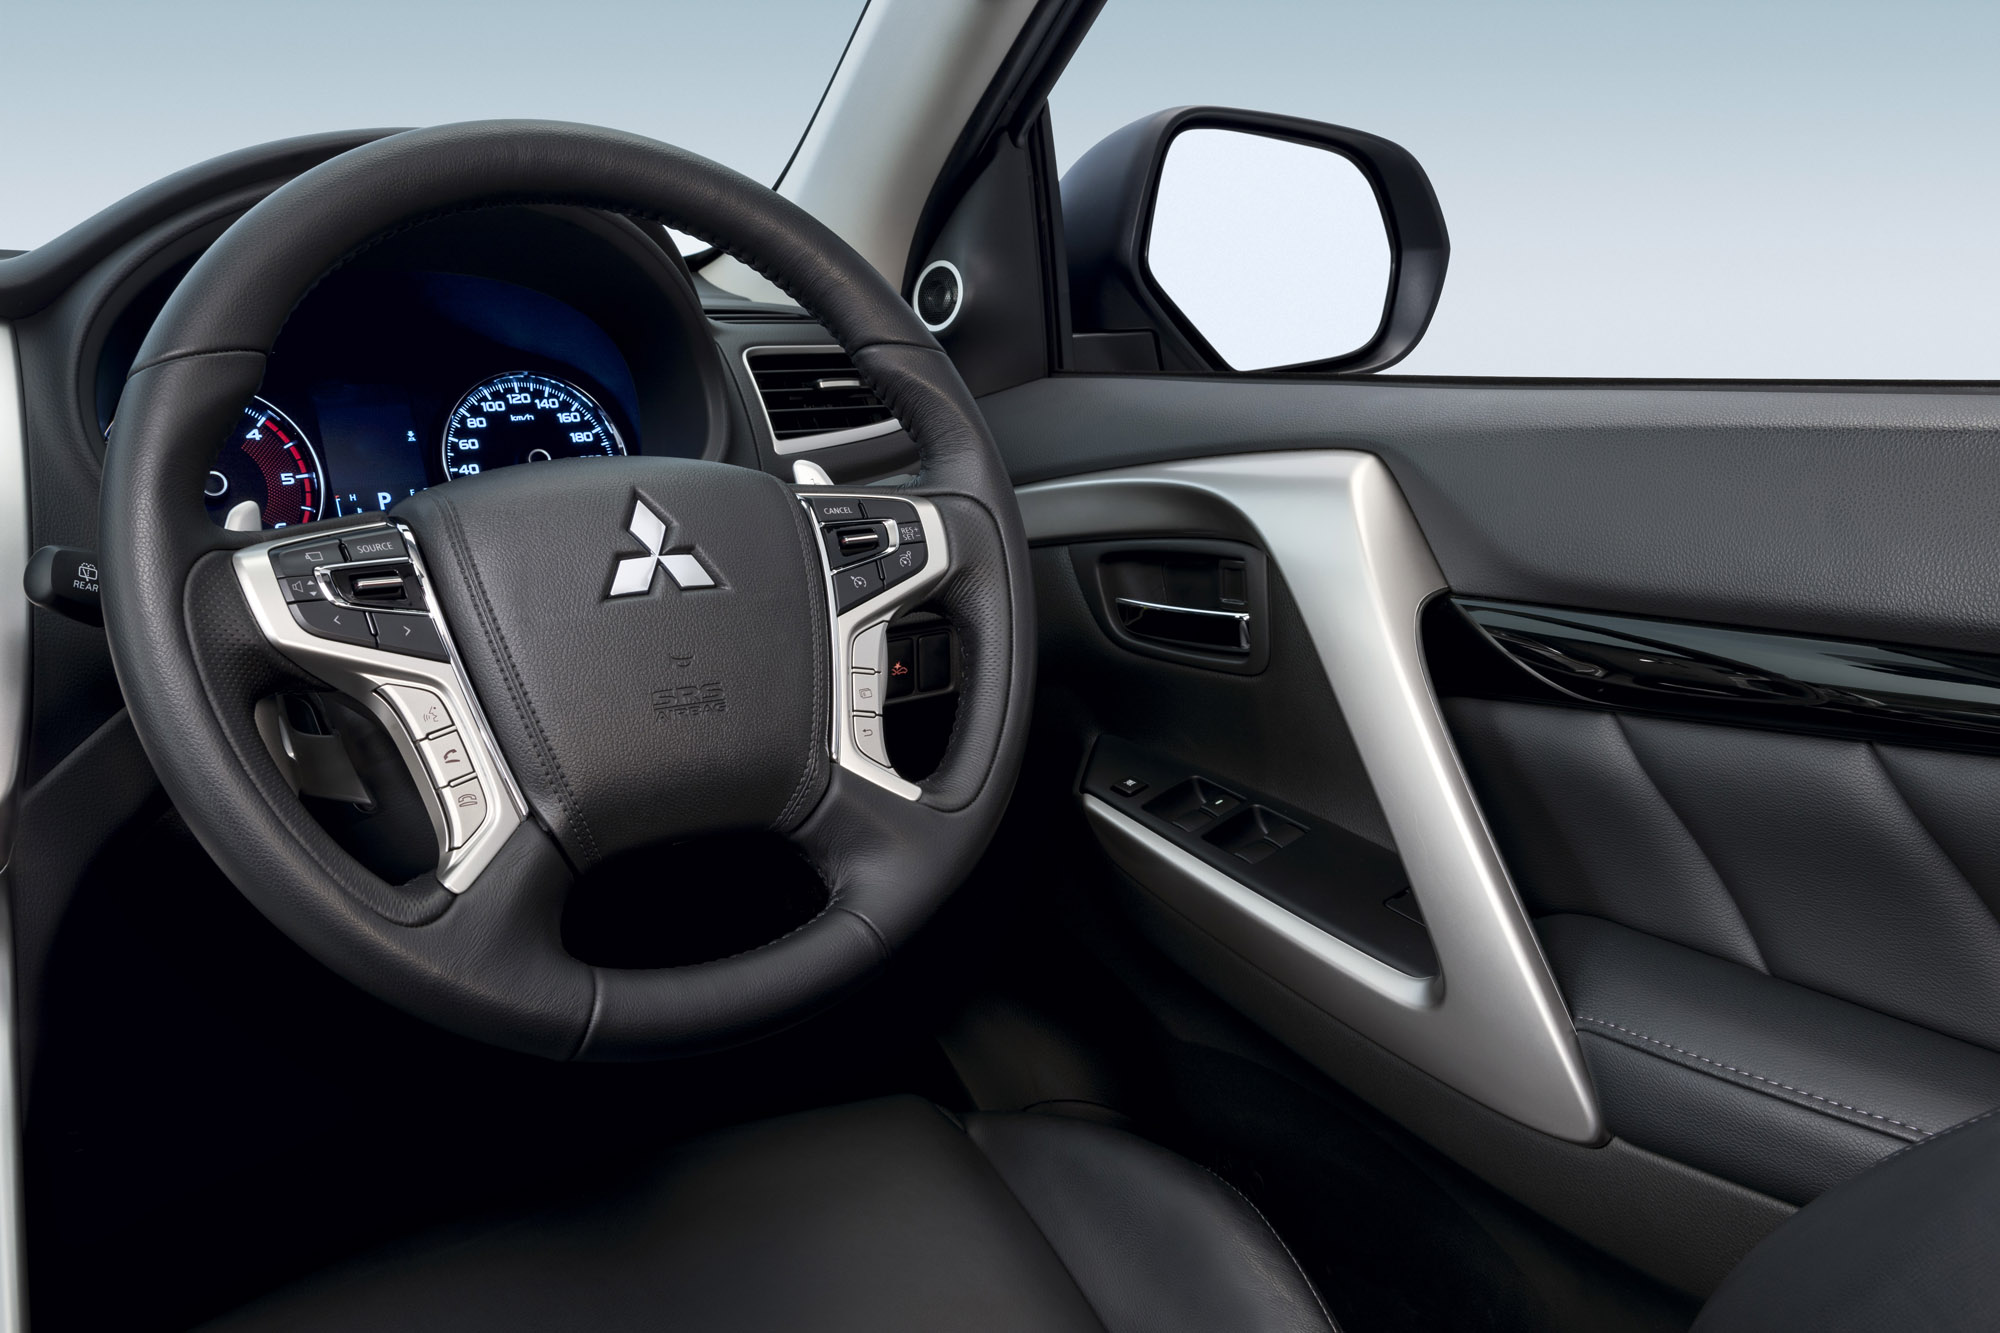 2016 Mitsubishi Pajero Sport Cockpit (Photo 2 of 23)